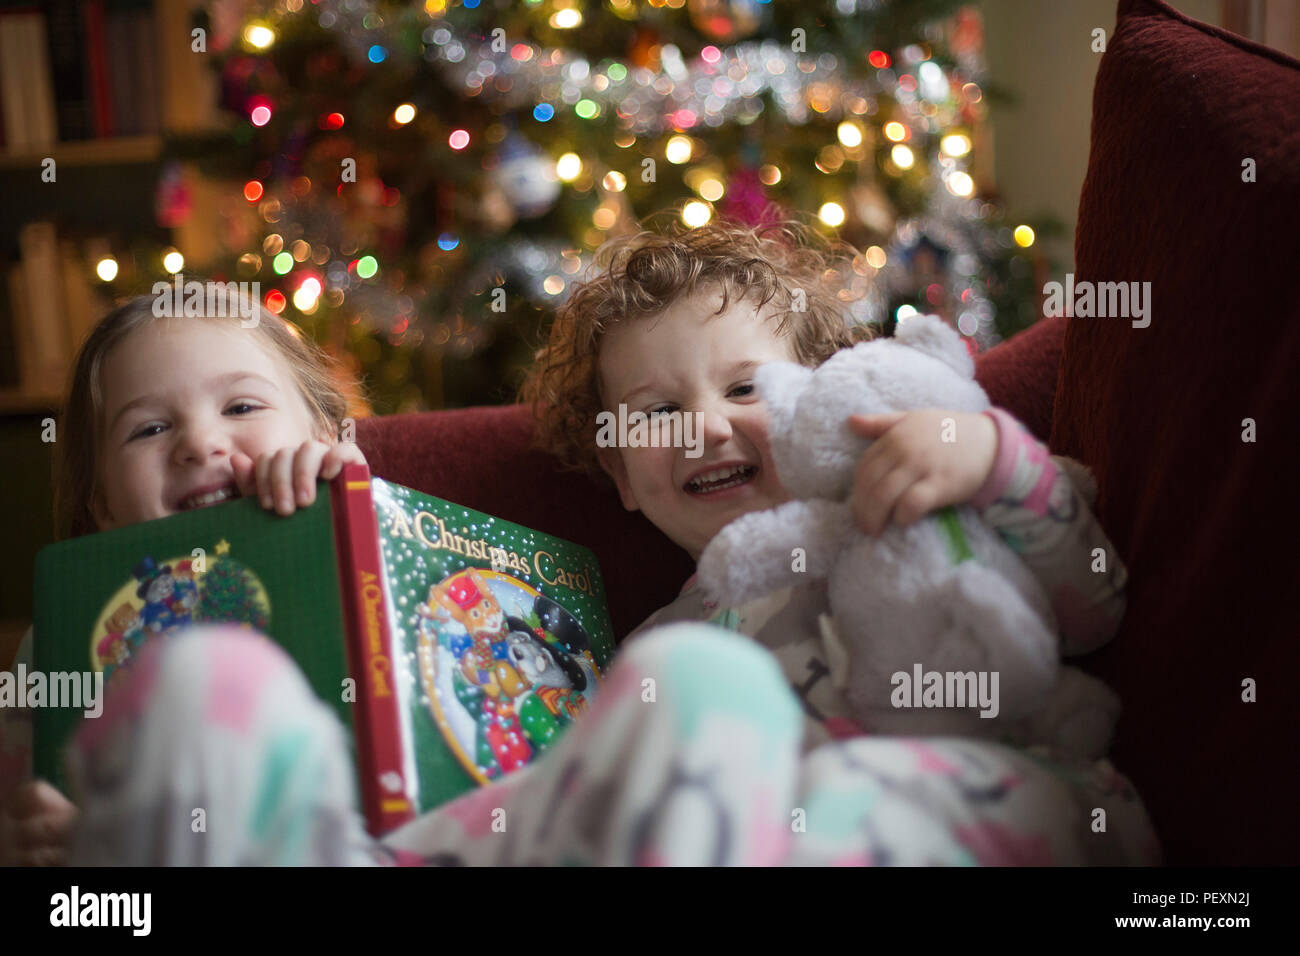 Brother and sister during Christmas - Stock Image